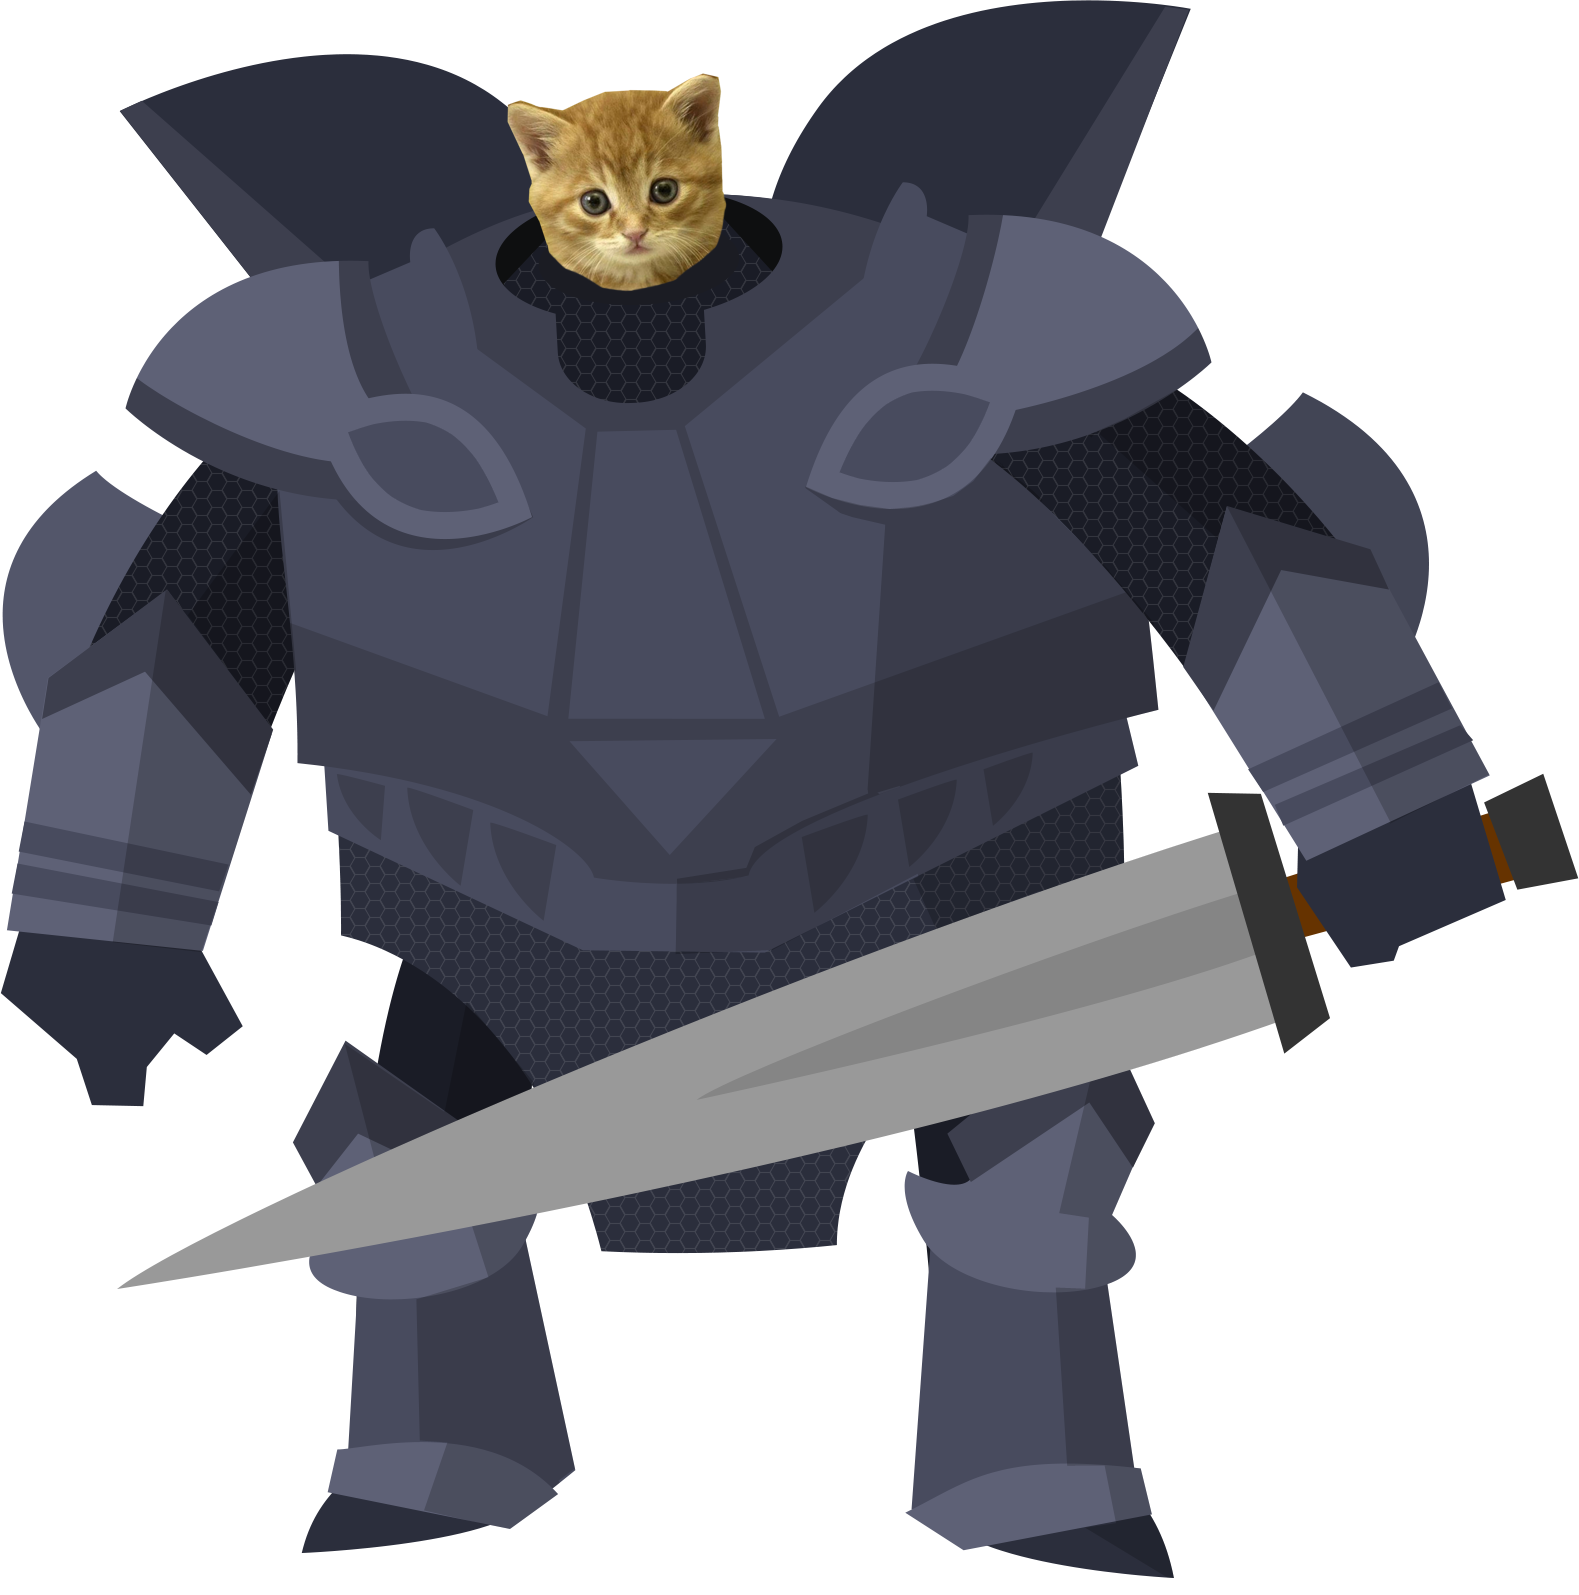 kitten-knight-flat-copy-2.png